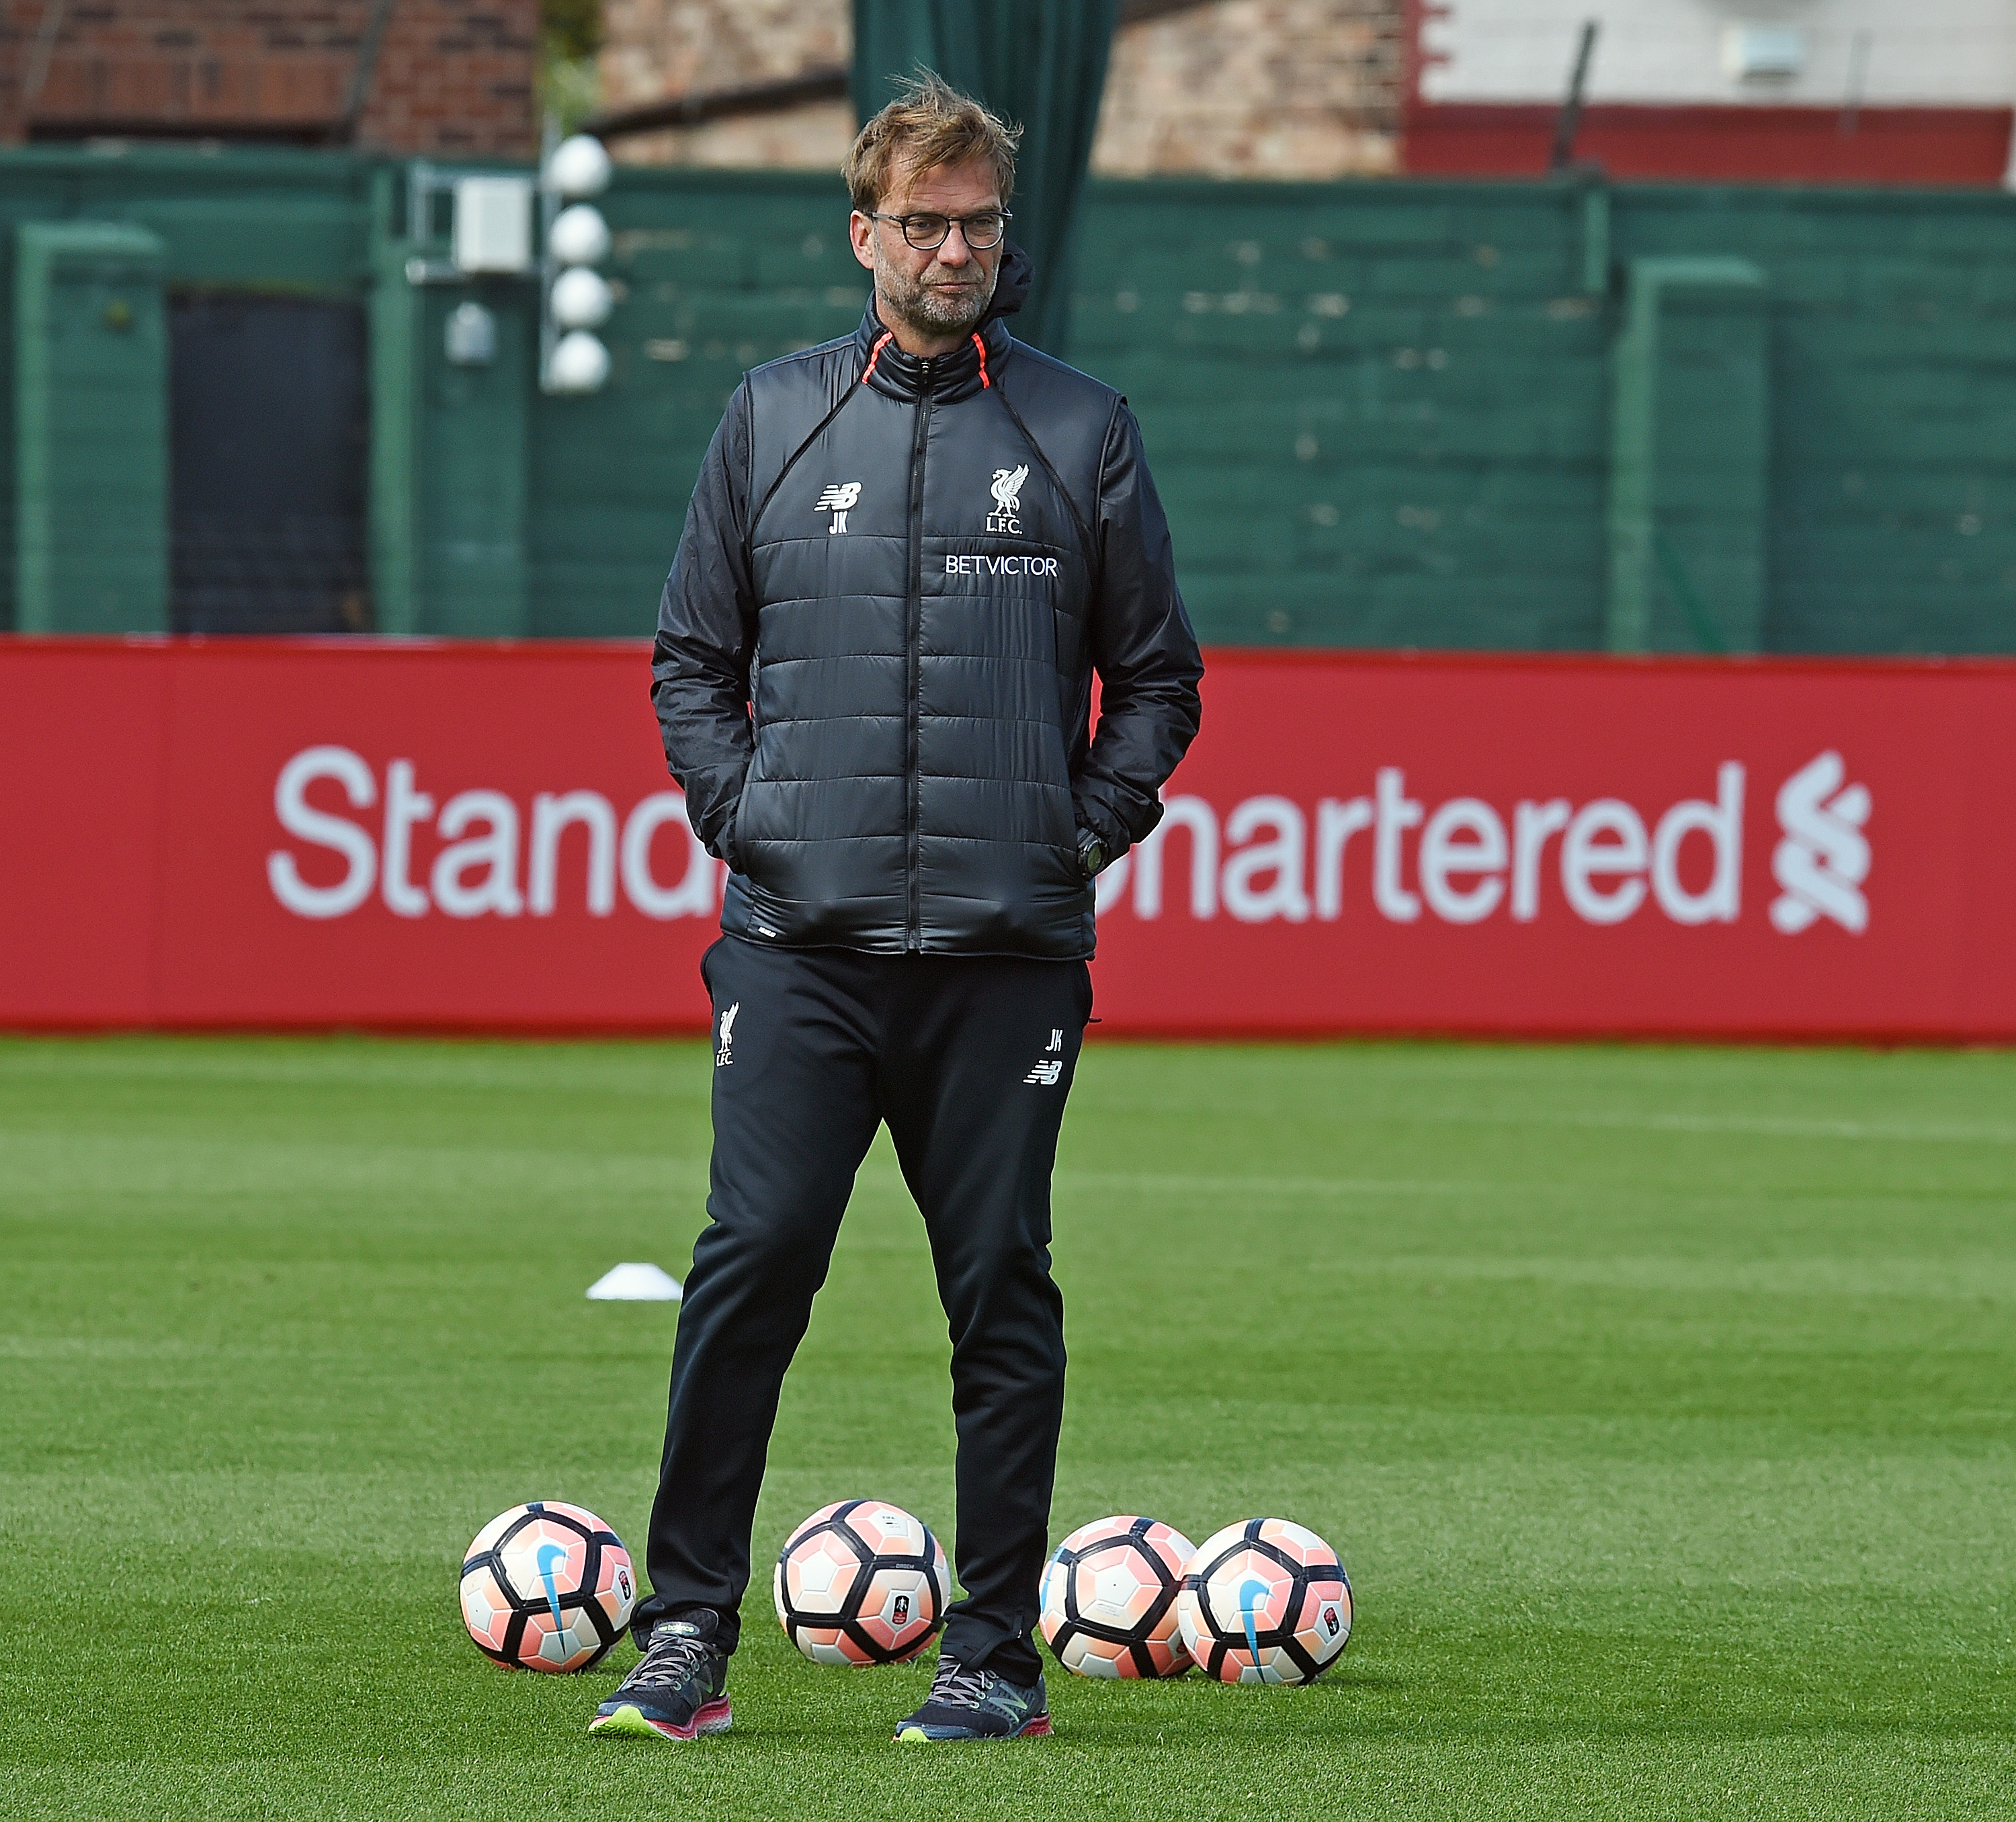 673270456-liverpool-training-session.jpg